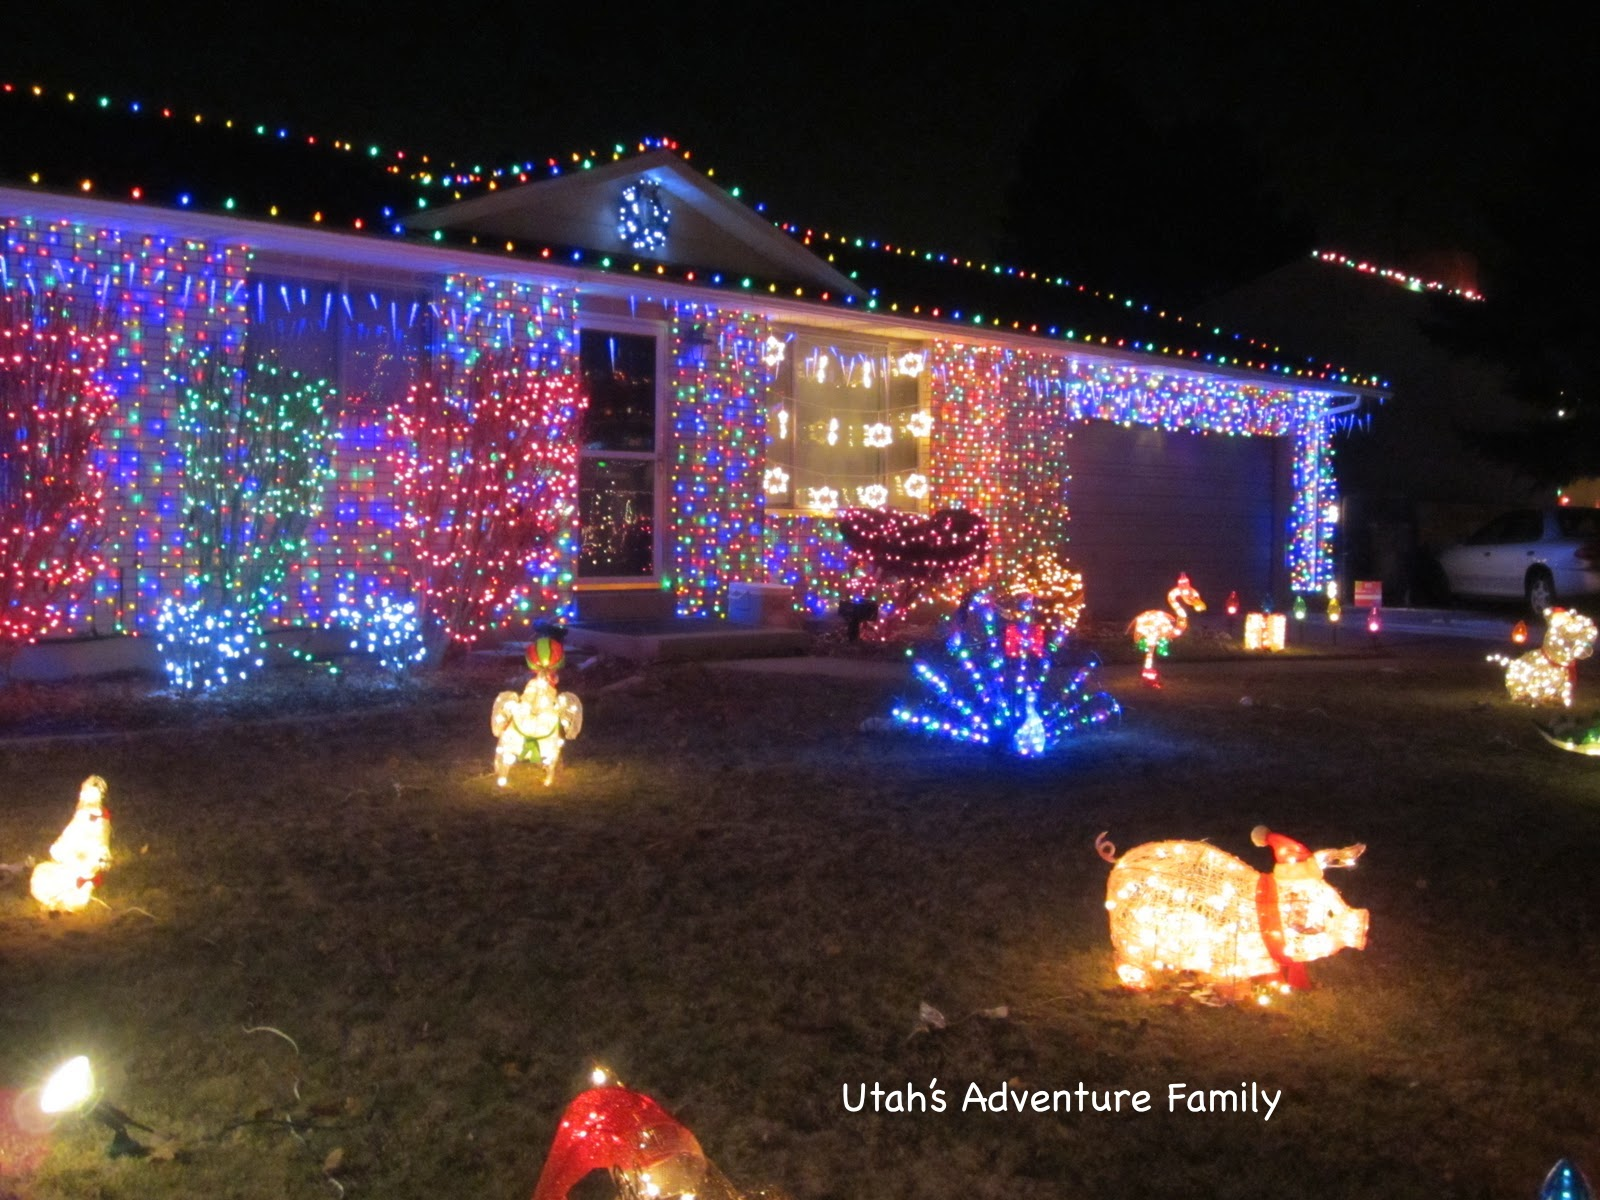 a house with lights set to music - Christmas Music Lights